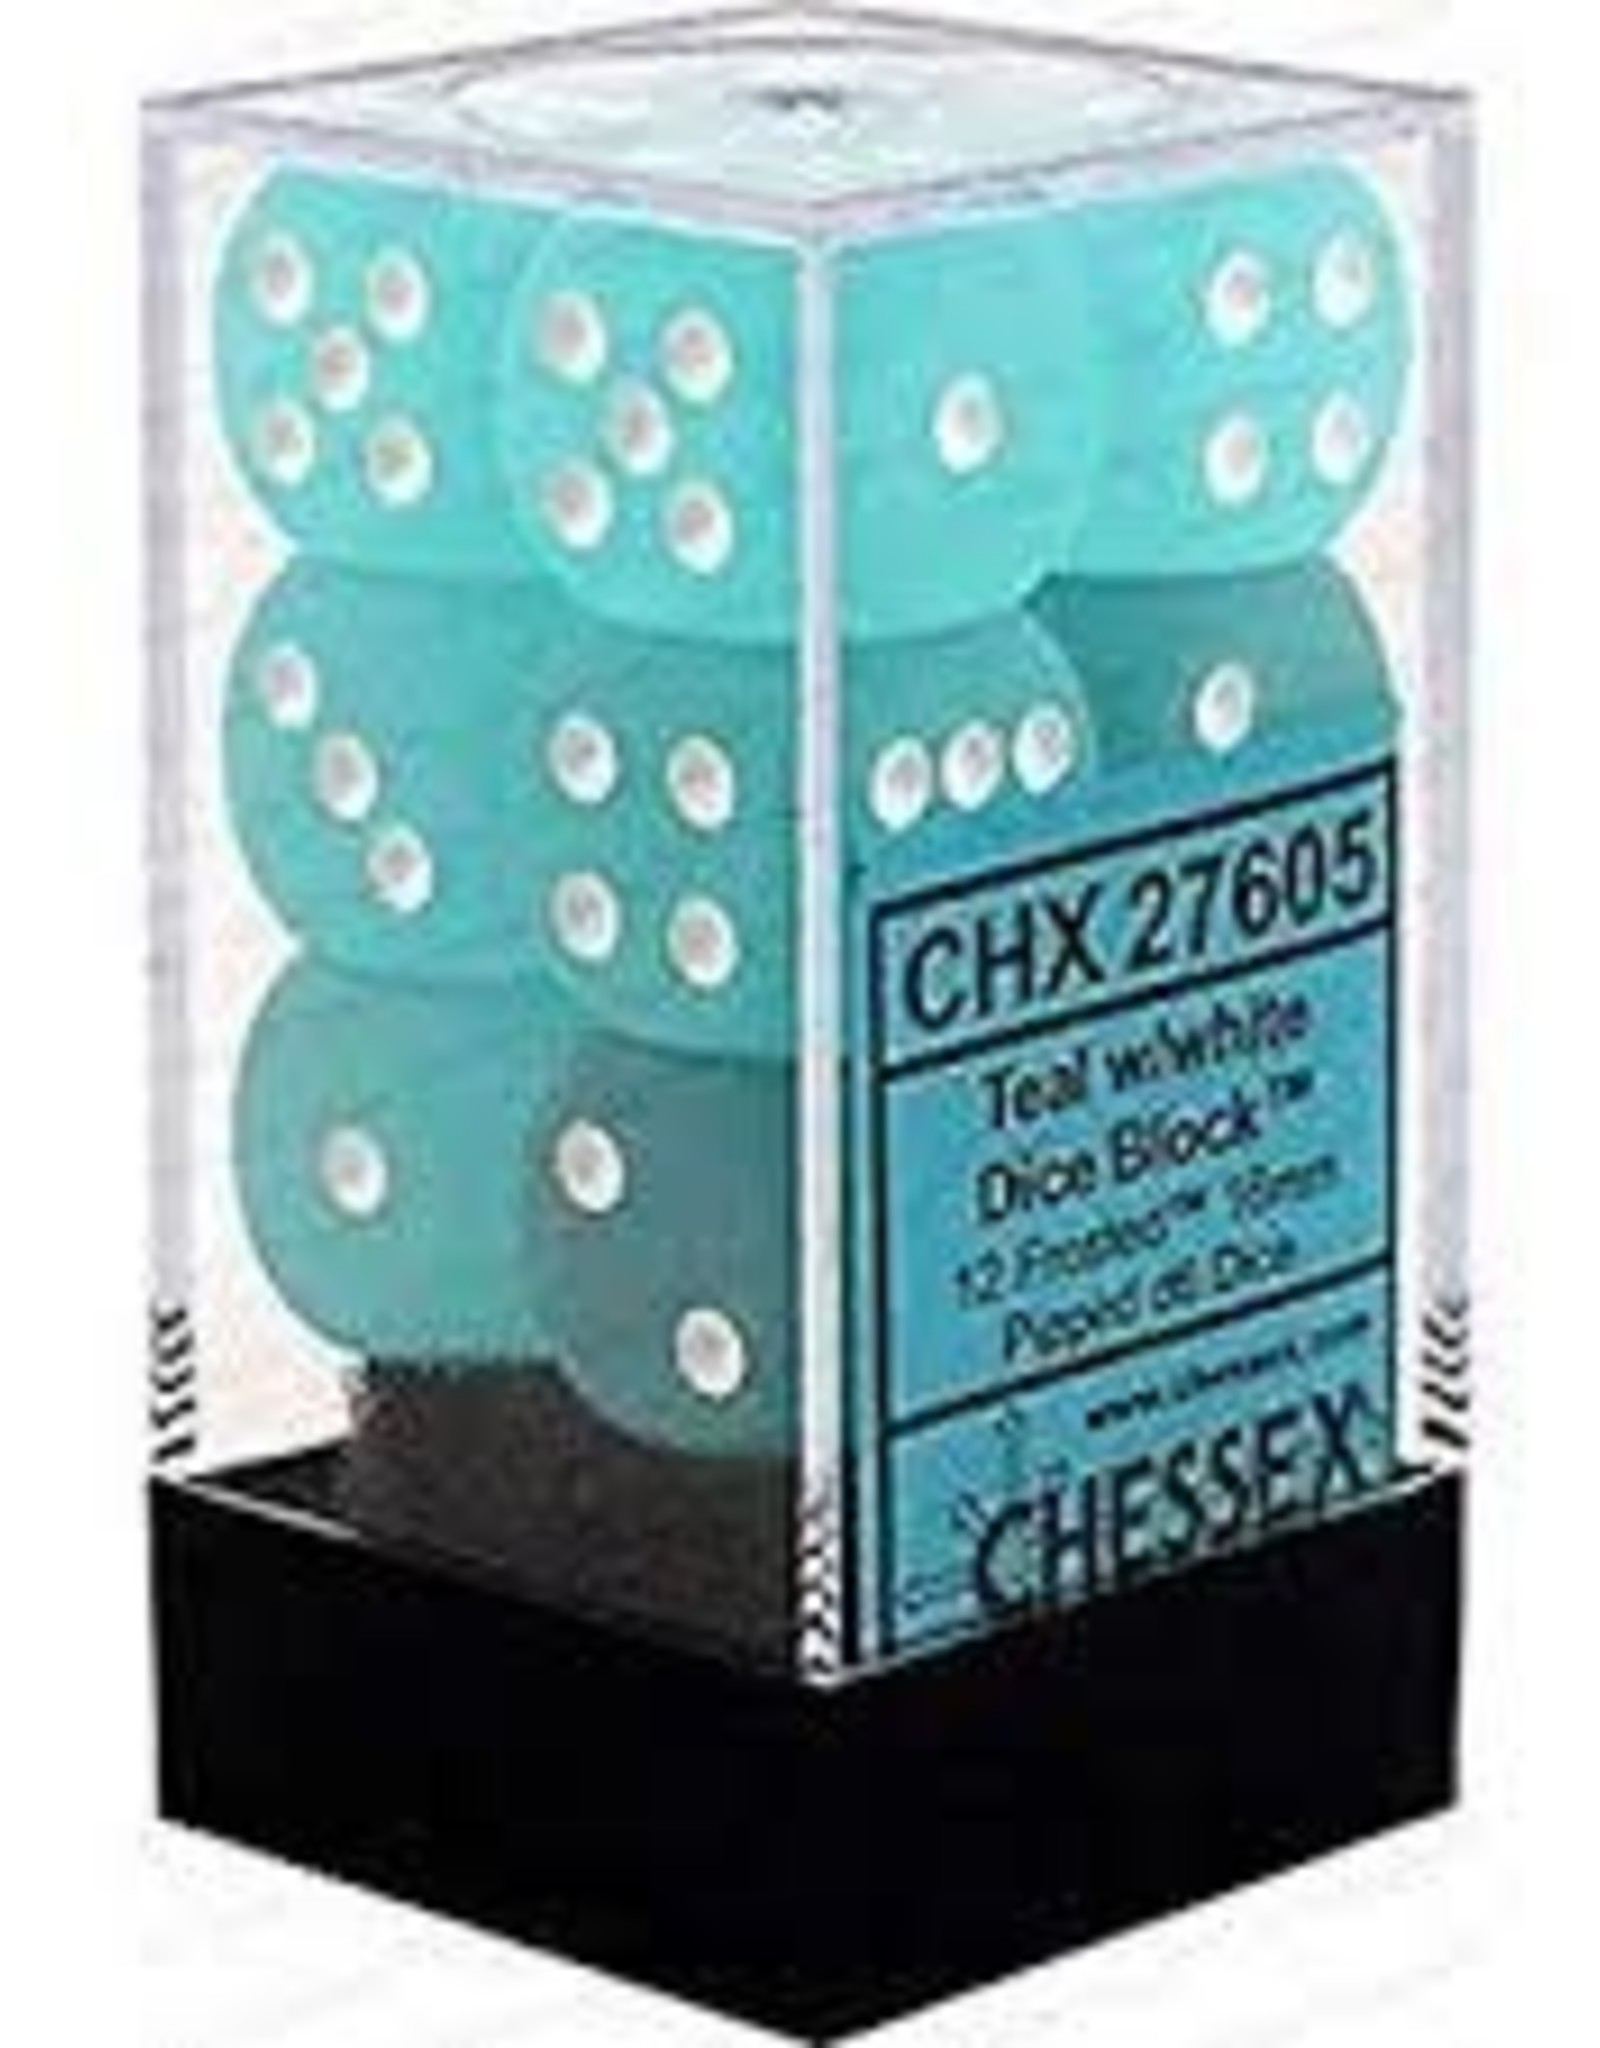 Chessex Dice-12D6 Frosted Teal & White